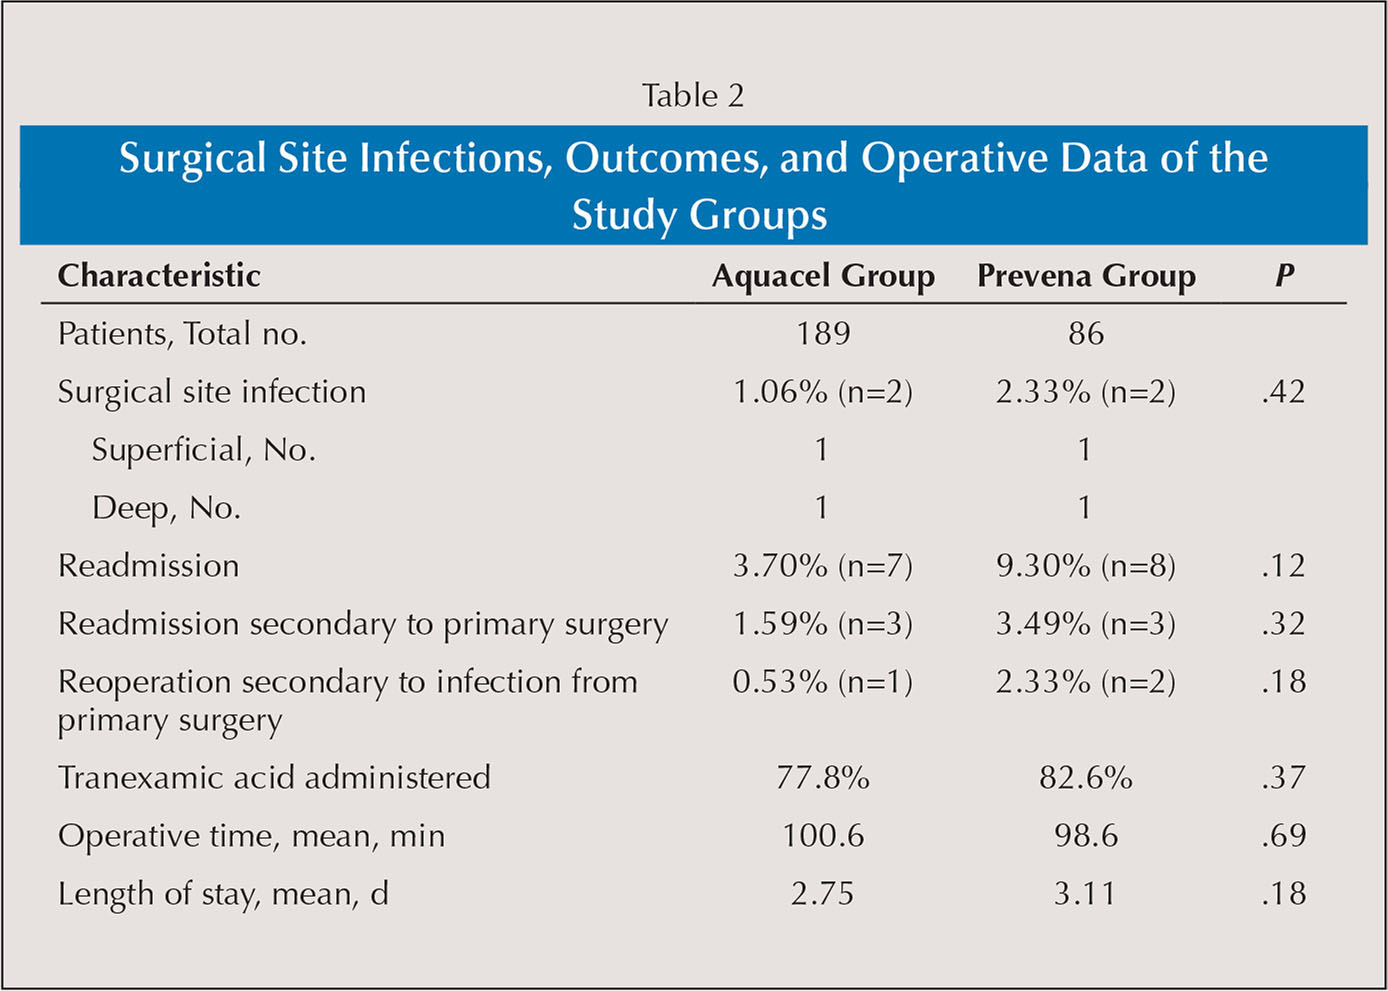 Surgical Site Infections, Outcomes, and Operative Data of the Study Groups